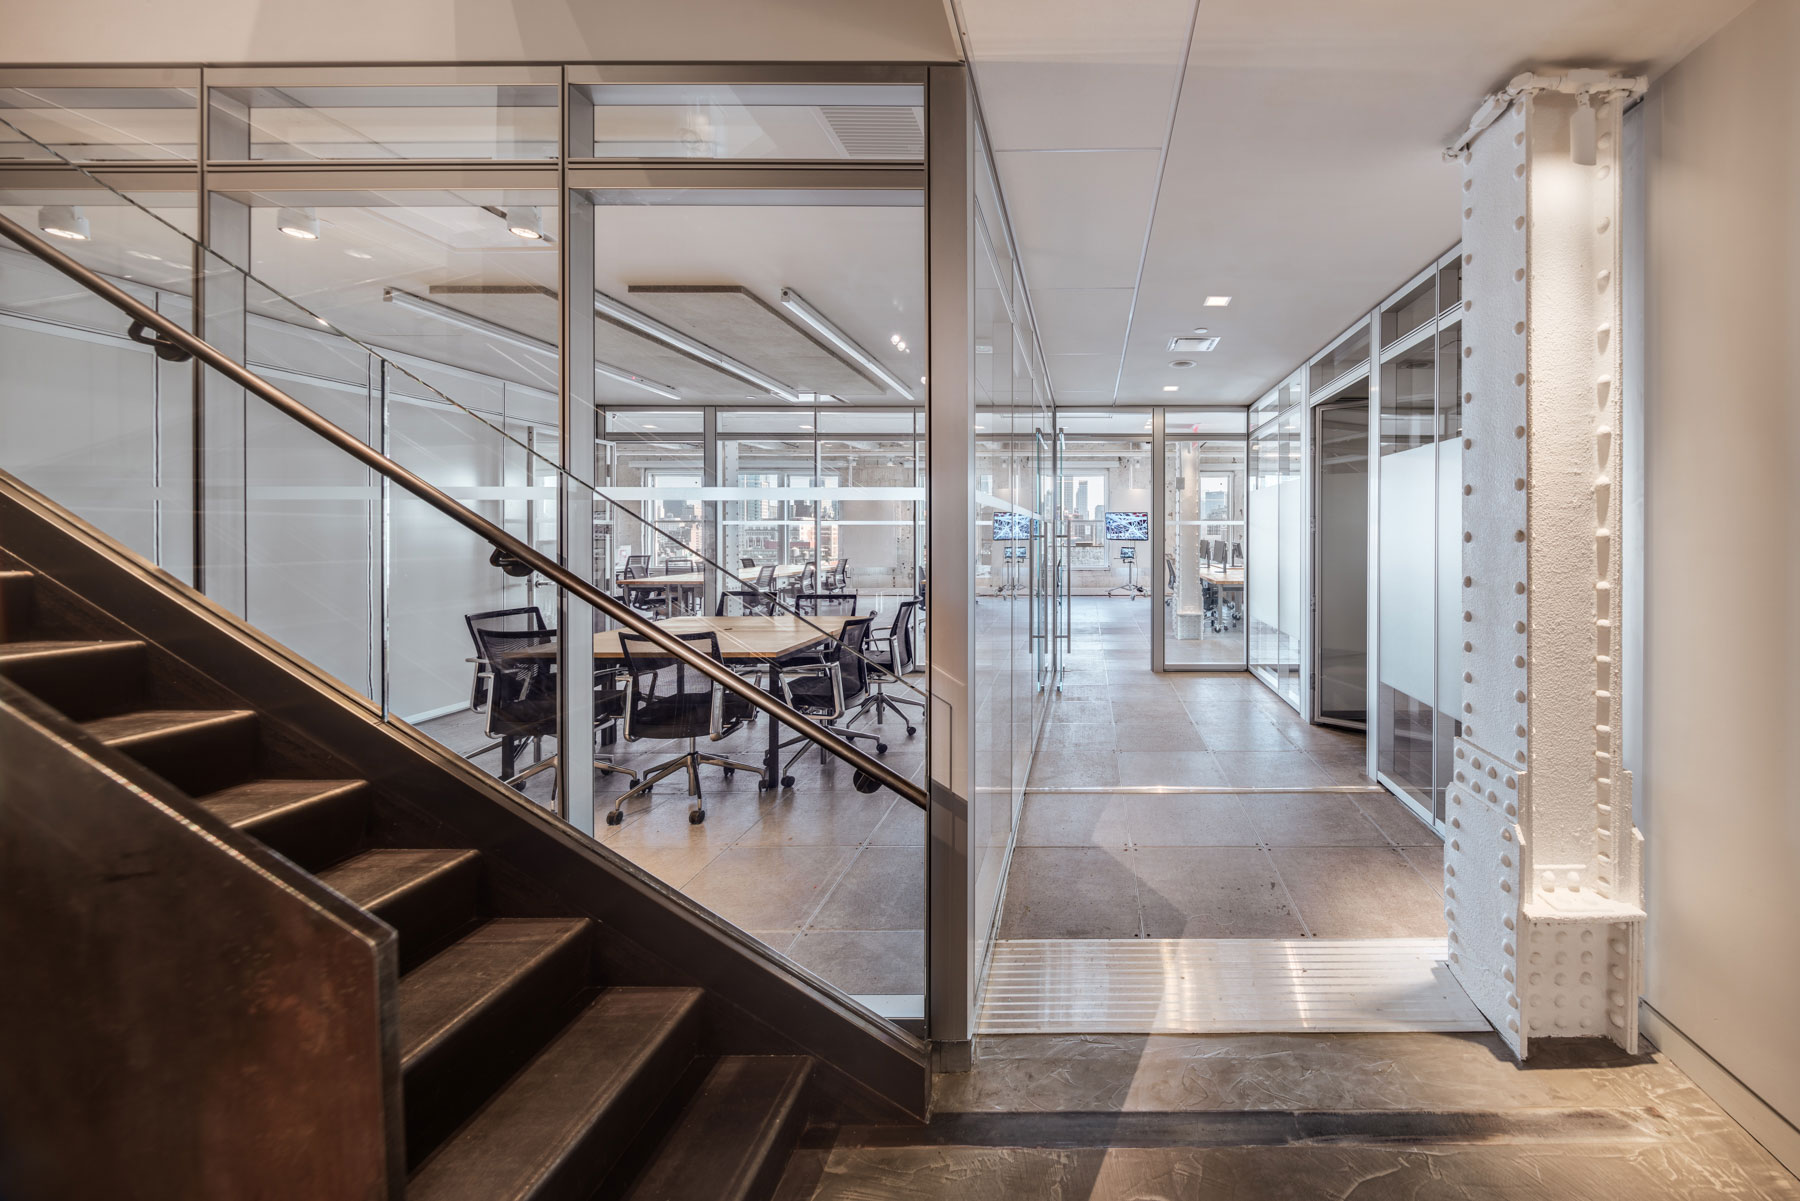 First Look Media, Landmark Building, Manhattan, New York City, Interior Architecture, Adaptable Office, Raised Floor, Steel Stair, Steel Columns, Rivets, Glass, Meeting Room